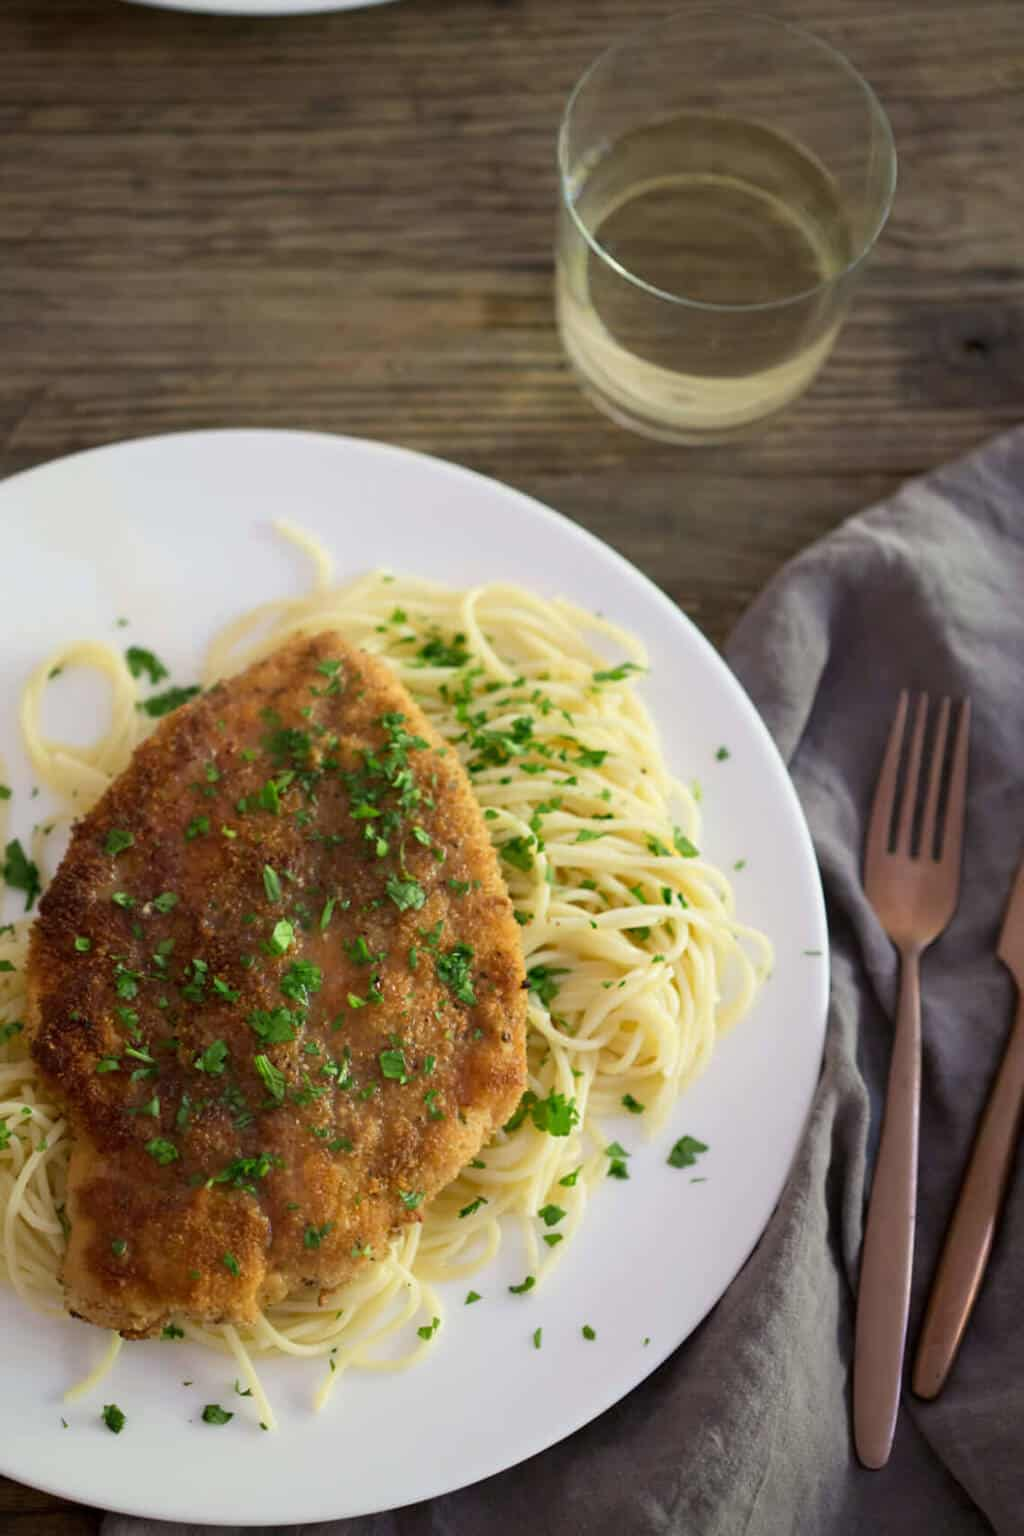 A photo of chicken piccata on a plate topped with fresh parsley.